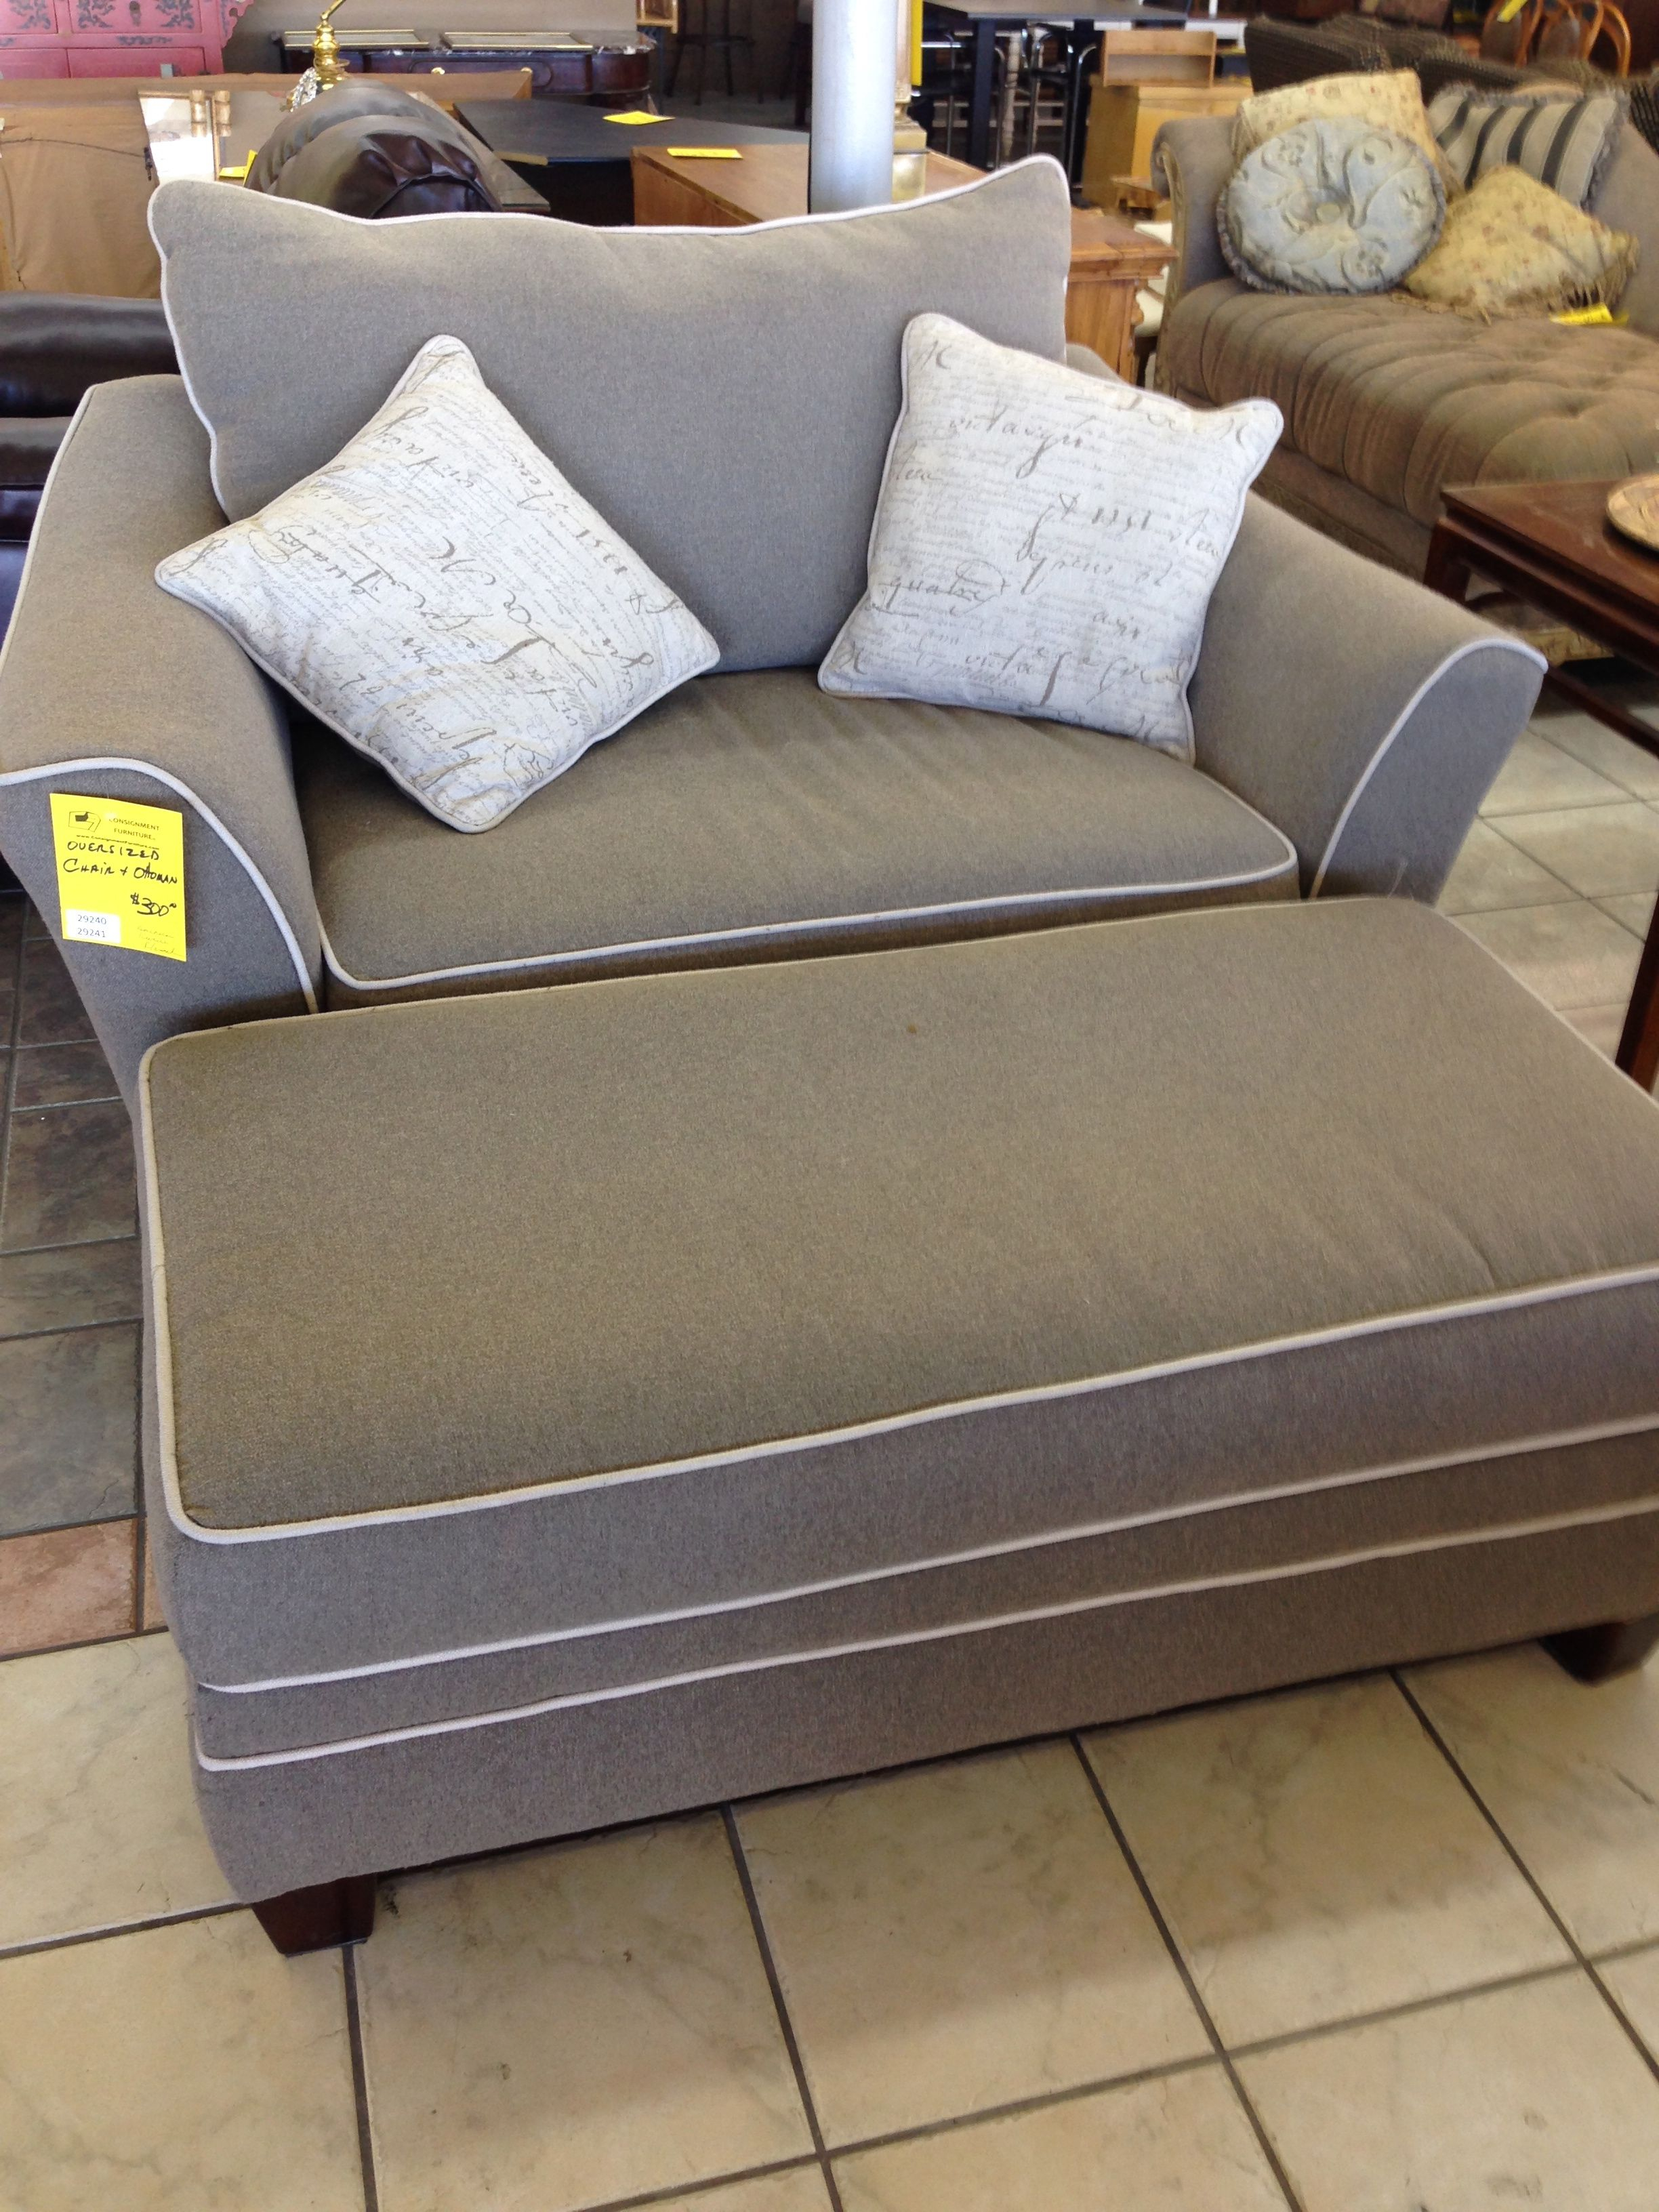 Stylish Grey Fabric Oversized Chairs With Rectangle Ottoman In With Regard To Maddox Oversized Sofa Chairs (View 2 of 25)